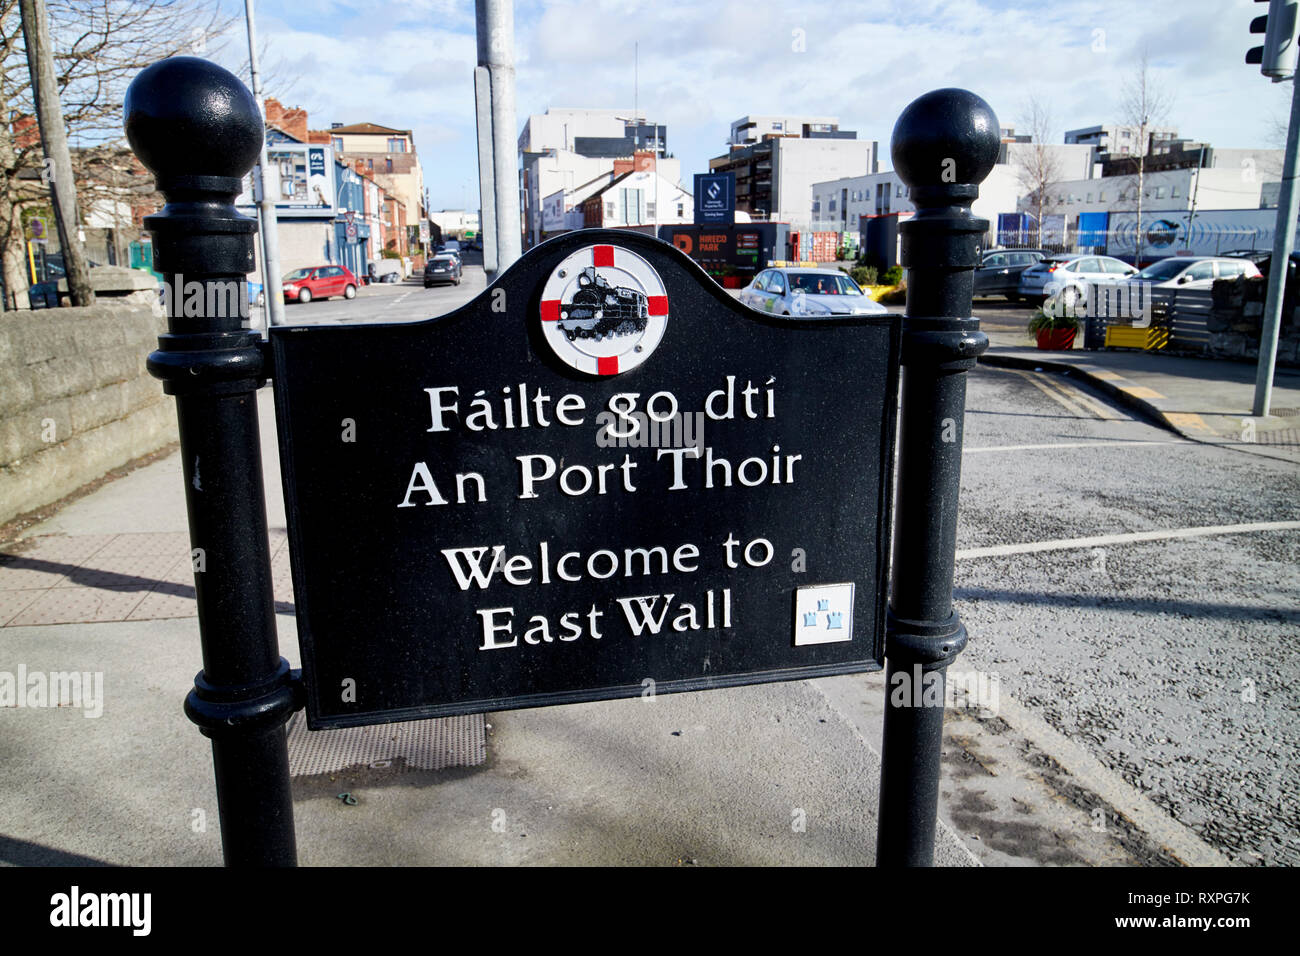 welcome to east wall roadsigns Dublin Republic of Ireland europe - Stock Image